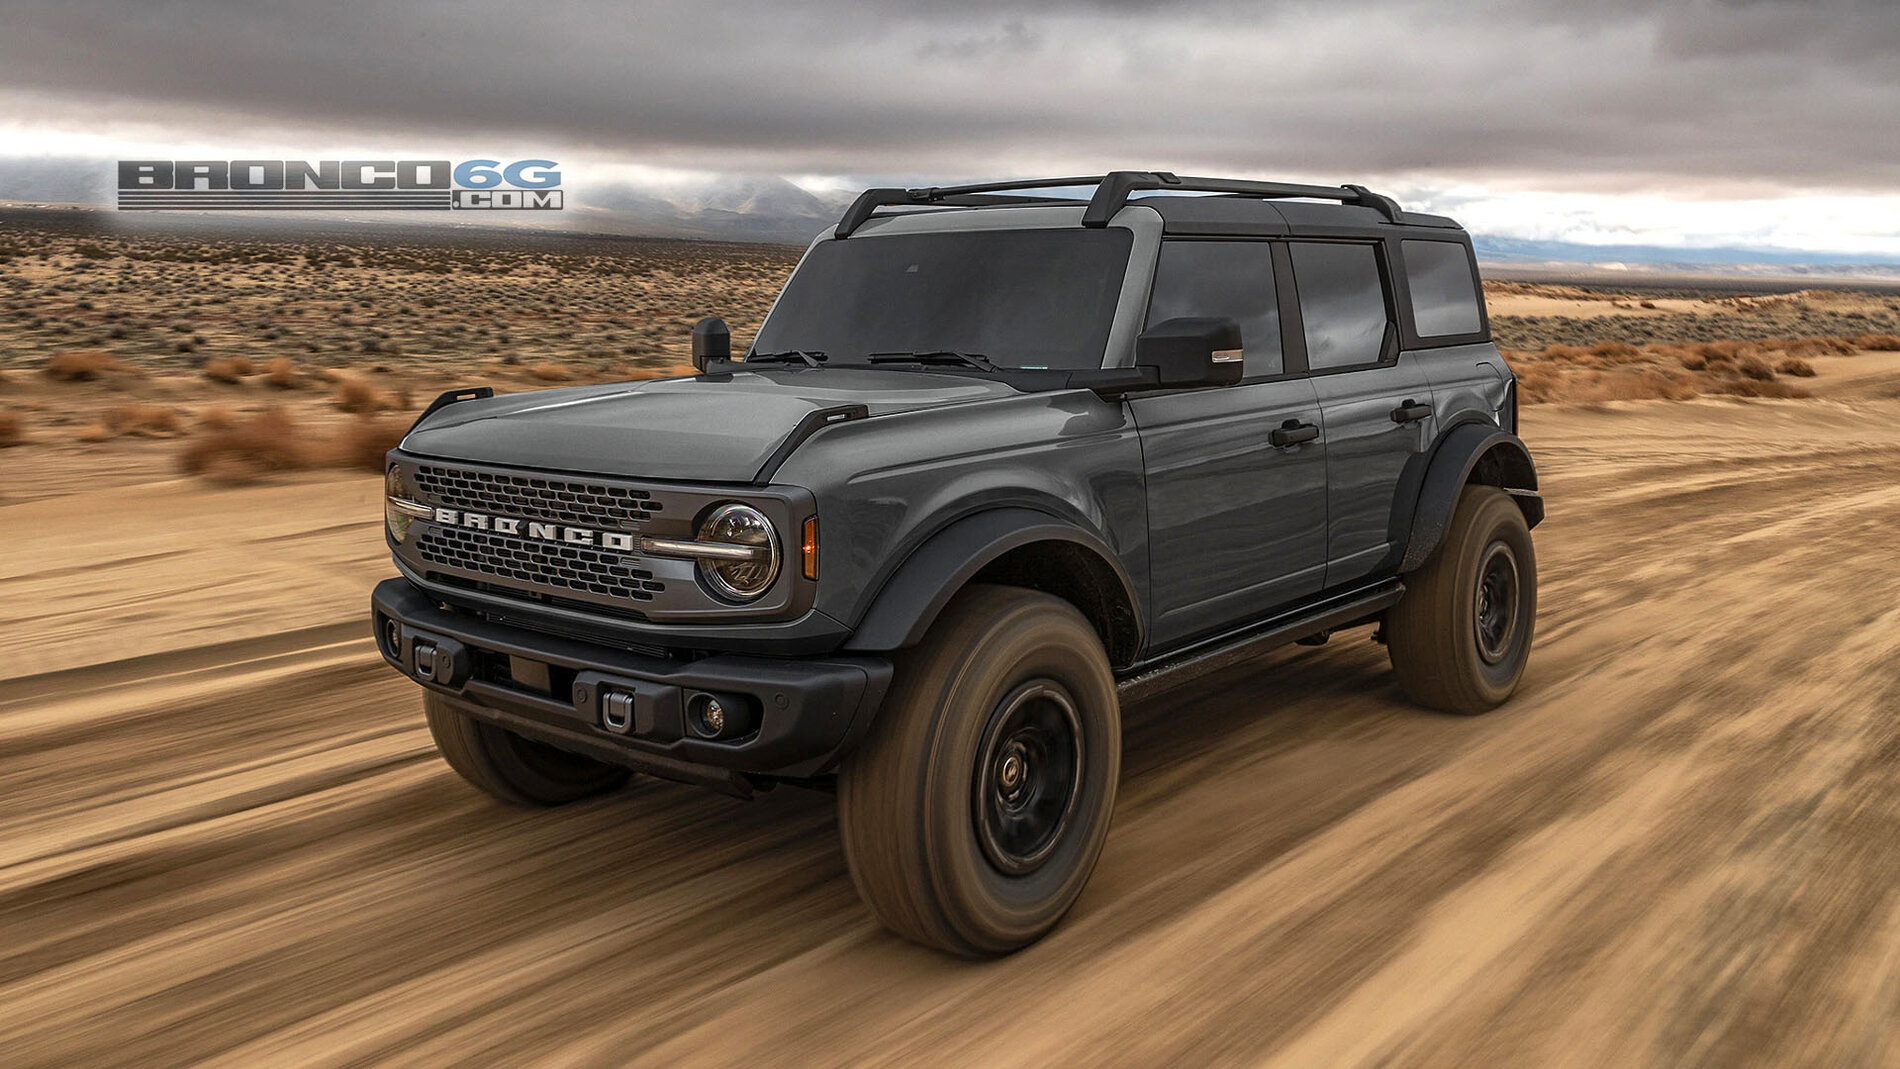 2021 Ford Bronco Sasquatch Carbonized-grayBronco6G.com.jpg